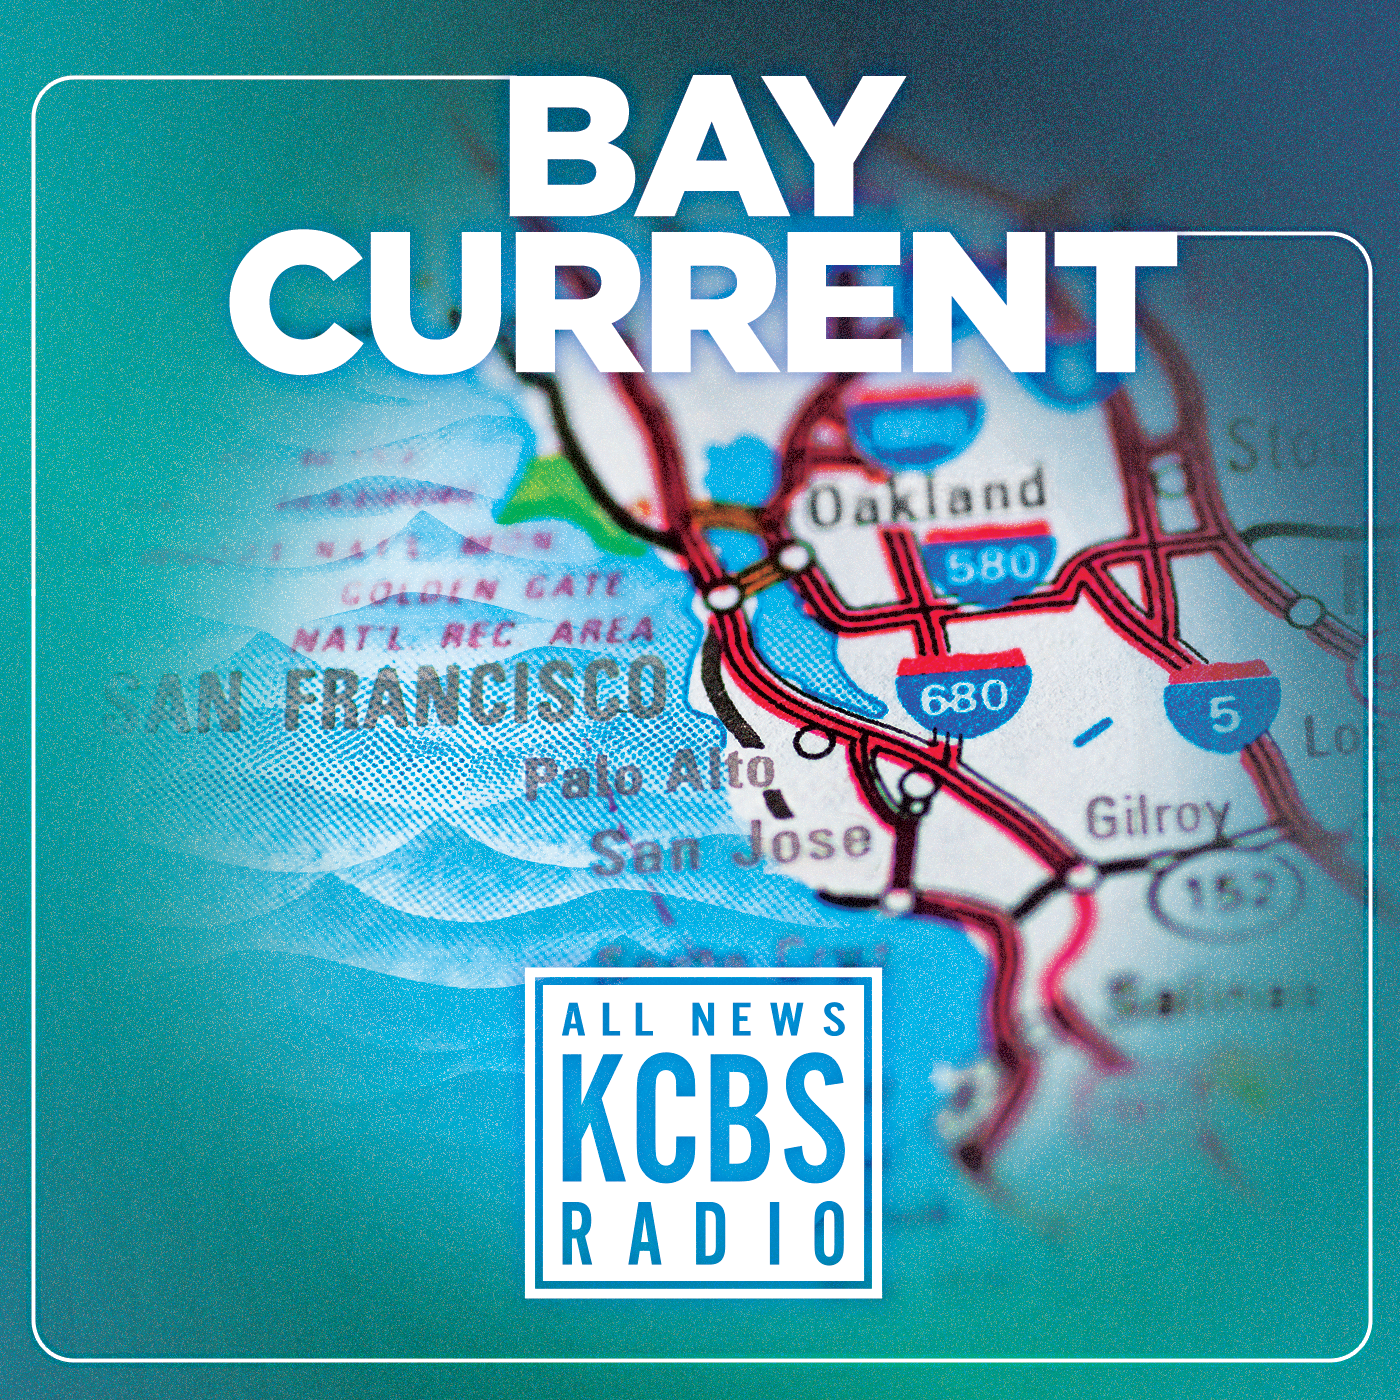 Bay Current